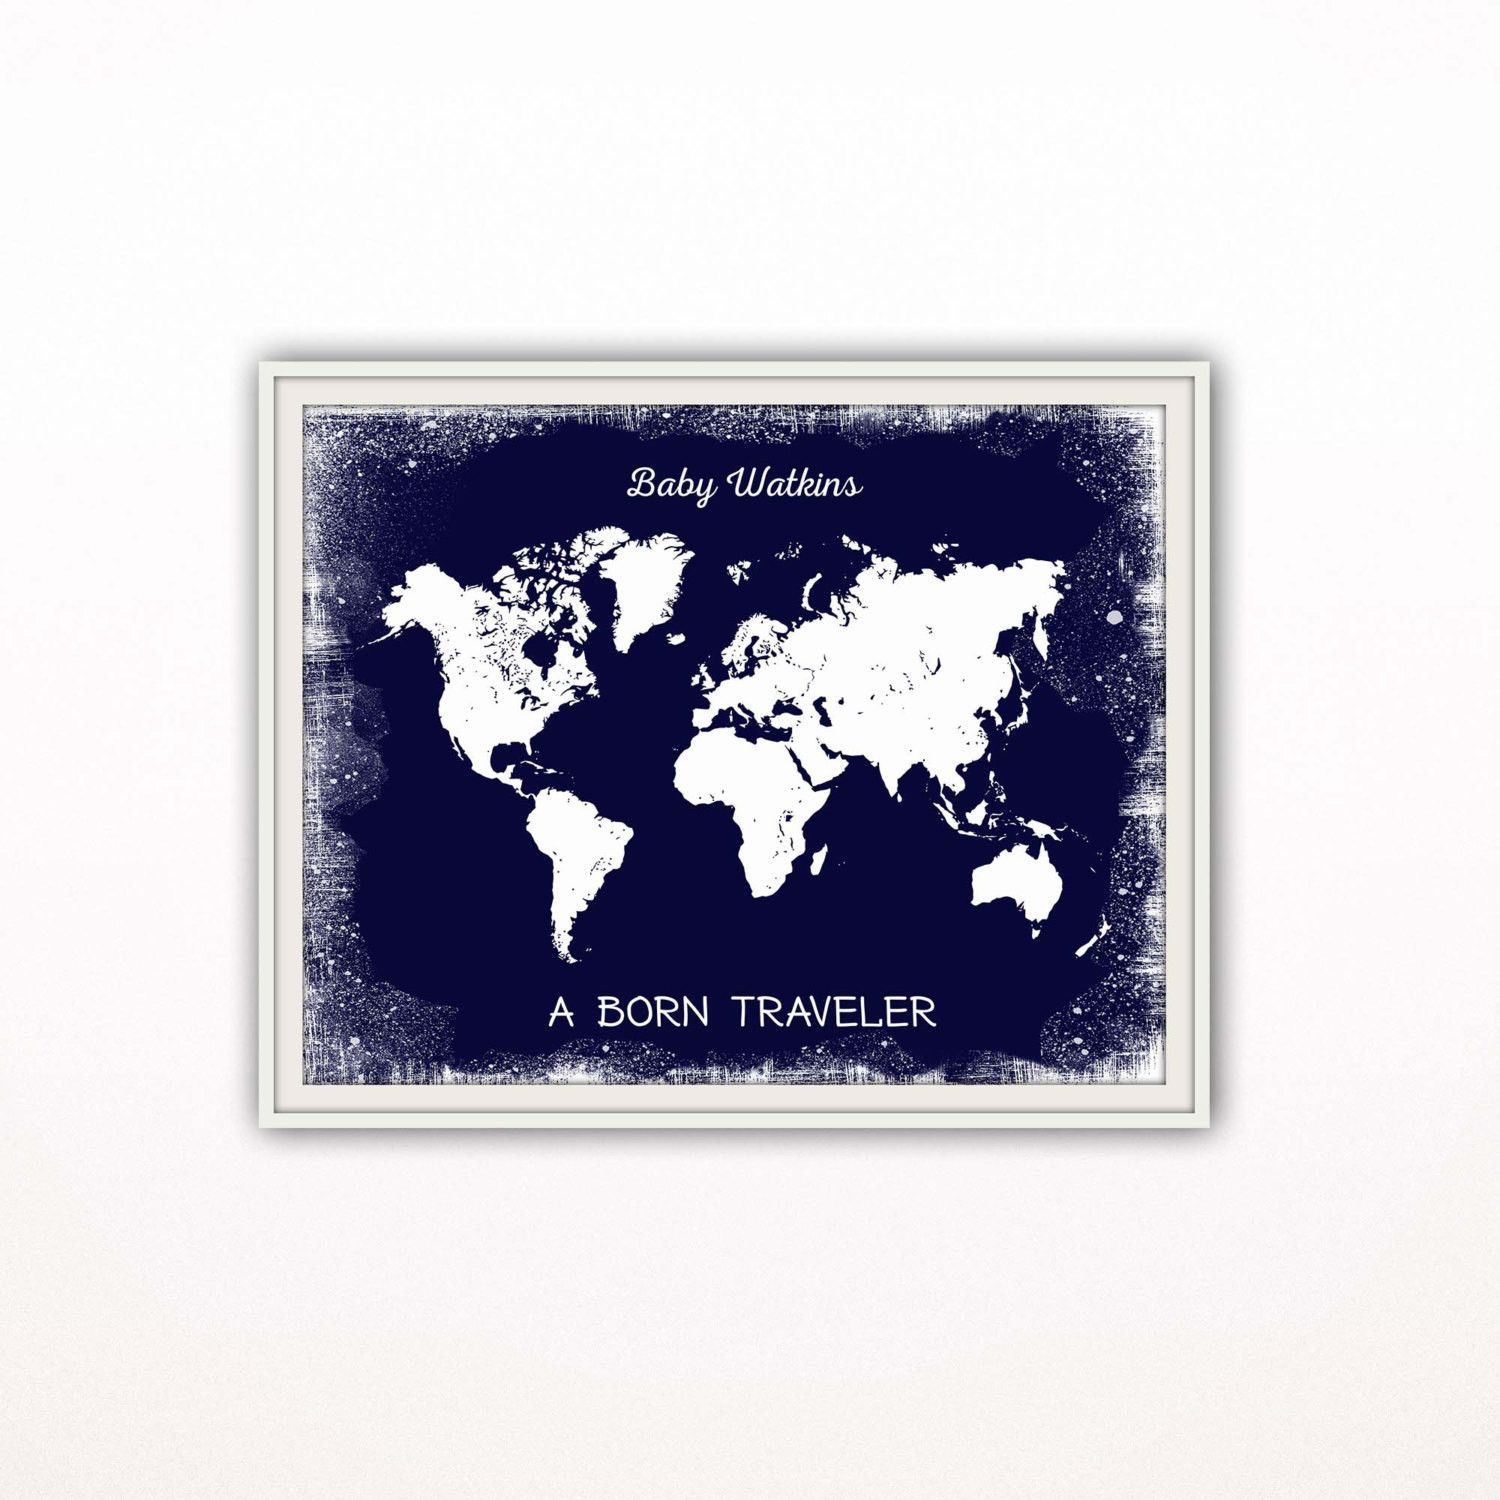 Navy blue nursery art print personalized world map printtravel world map nursery art print designed in white and navy blue for all the born travelers out there it would make a great baby shower gift gumiabroncs Image collections